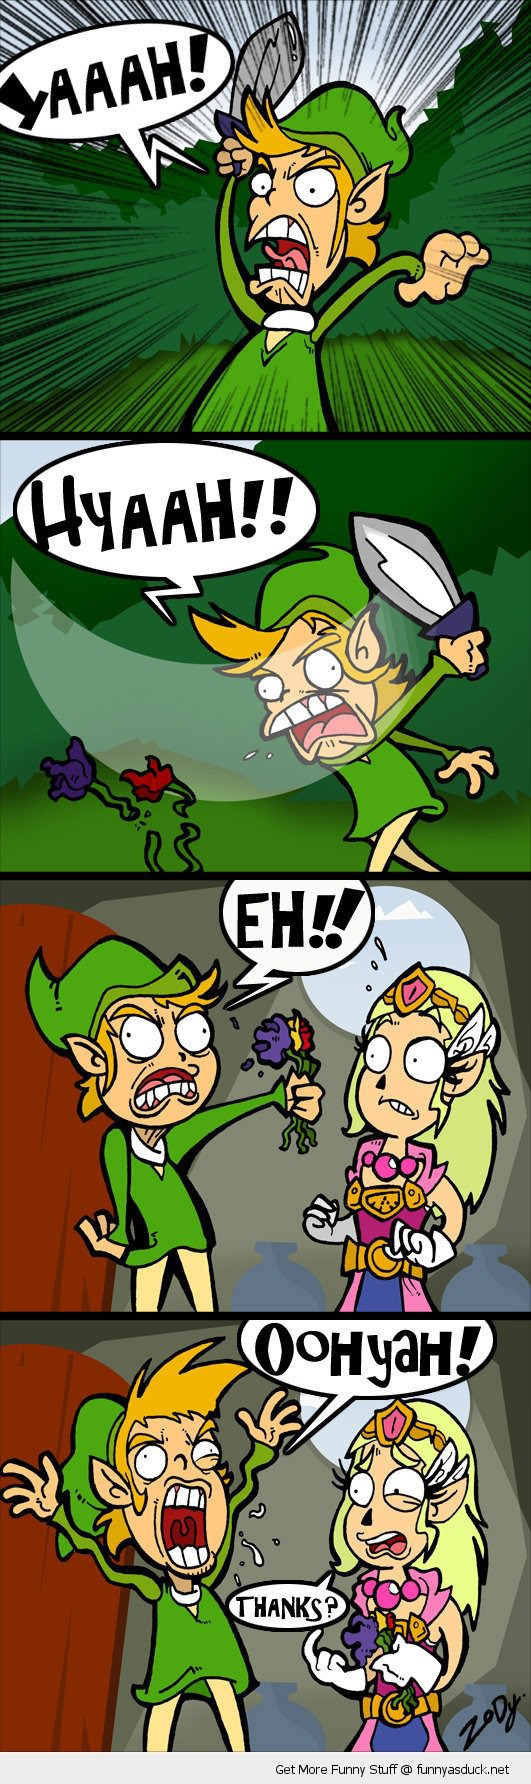 zelda link nintendo gaming comic funny pics pictures pic picture image photo images photos lol